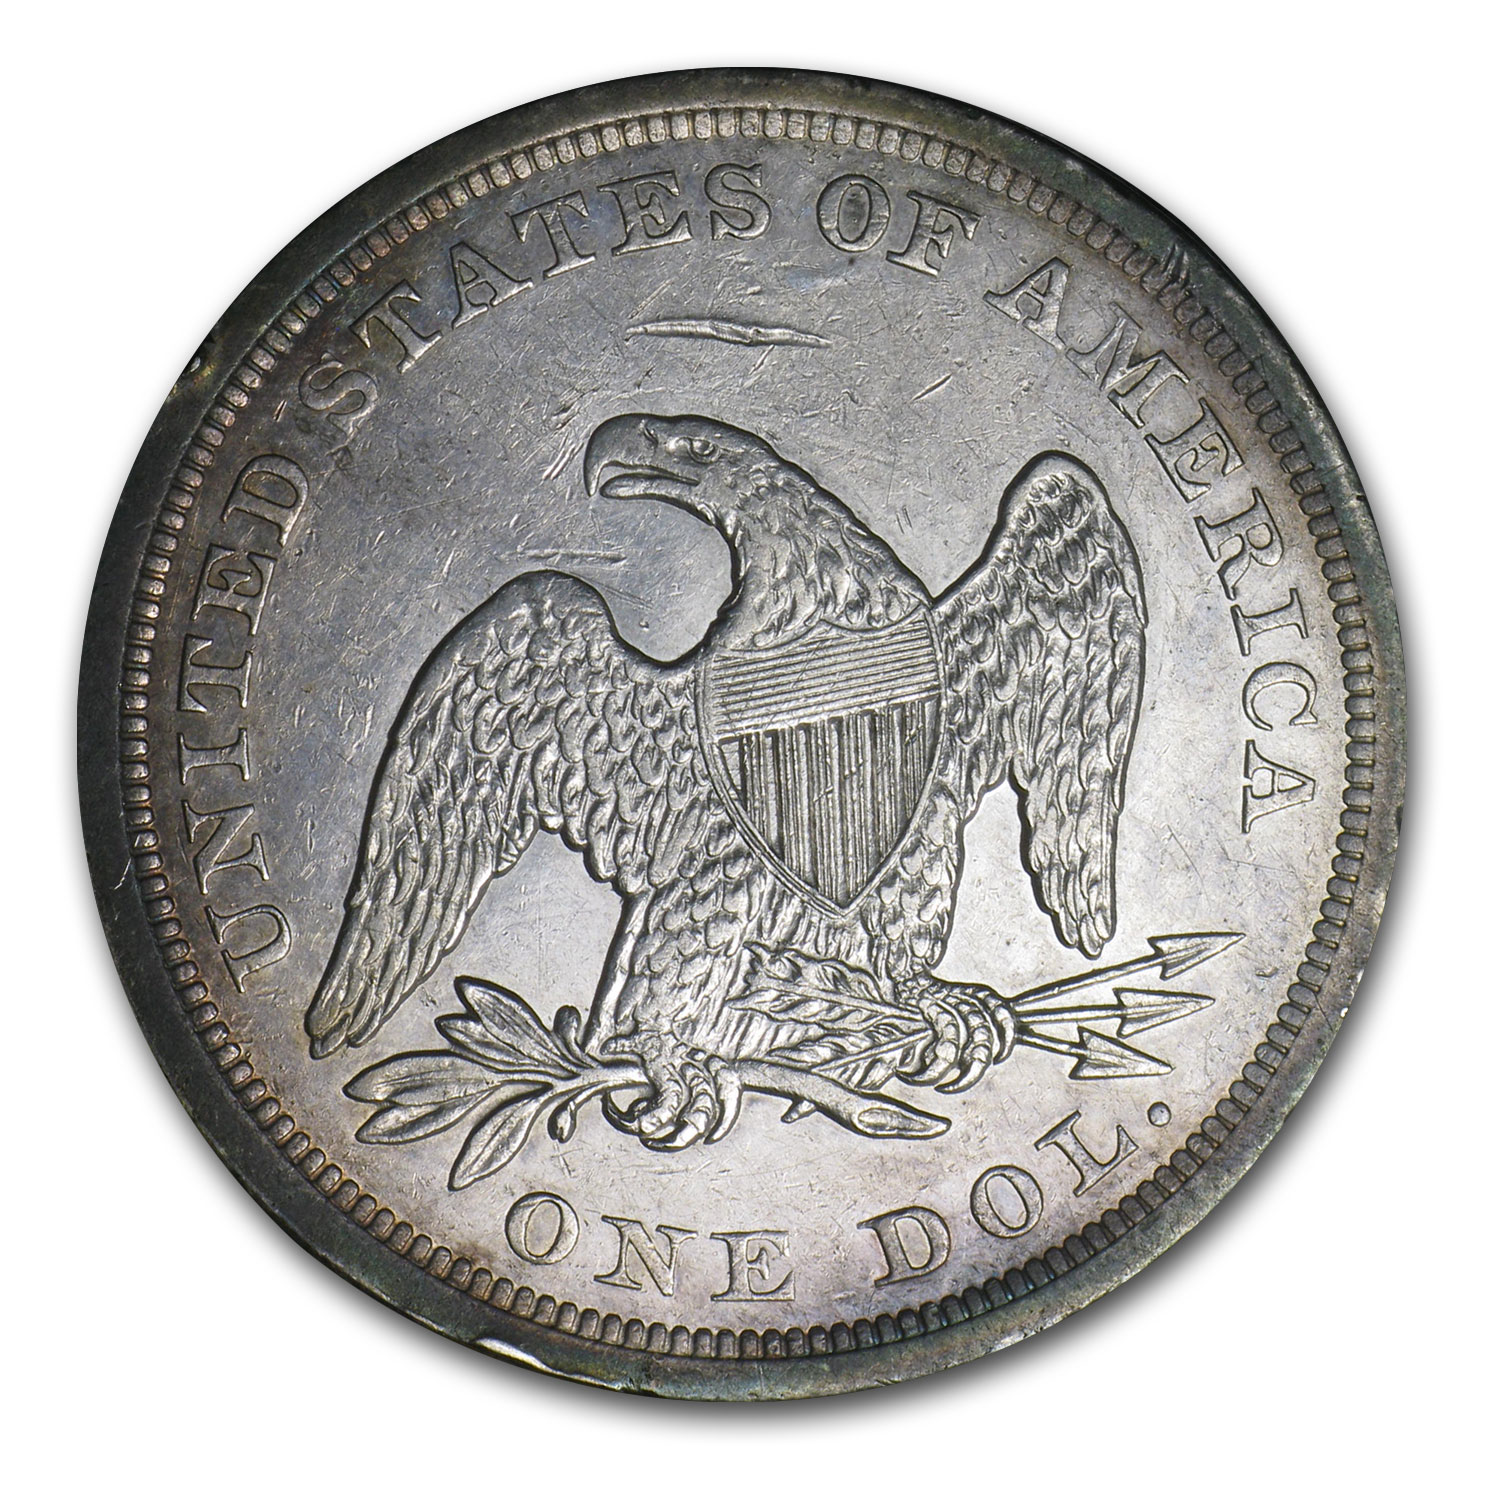 1842 Liberty Seated Dollar - Almost Uncirculated